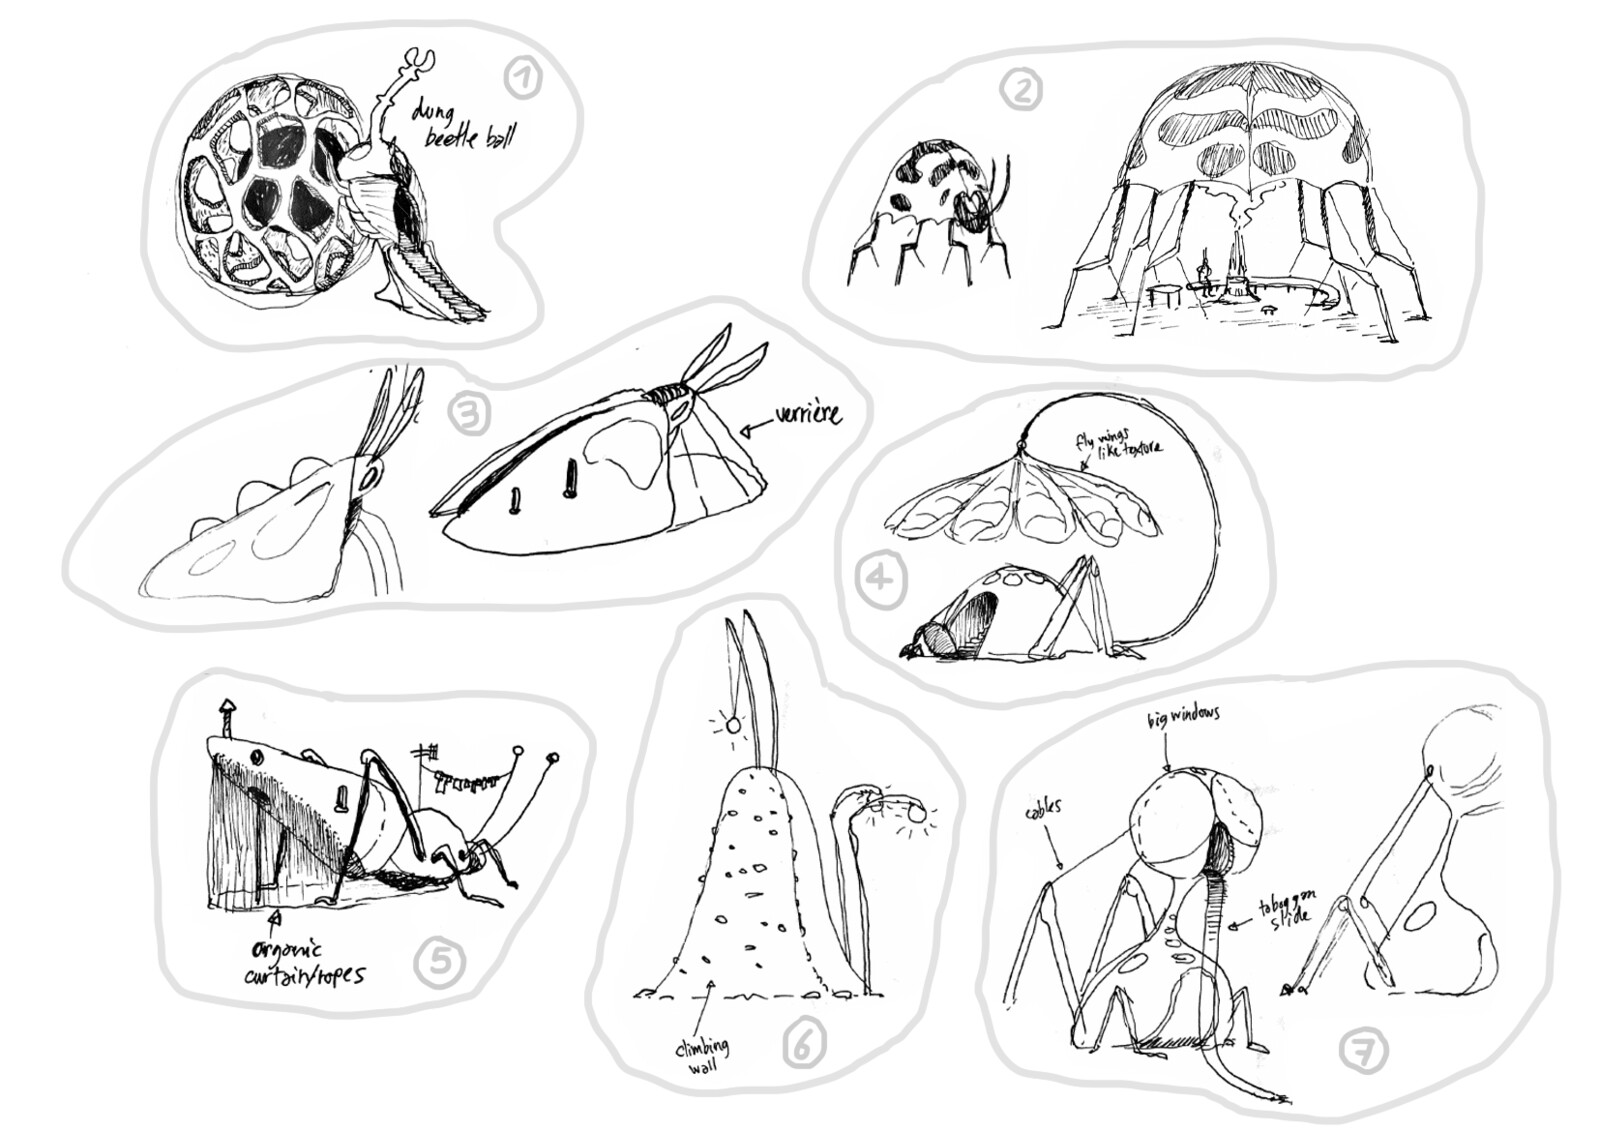 Insect-themed architecture sketched, destined to an environment concept artist.